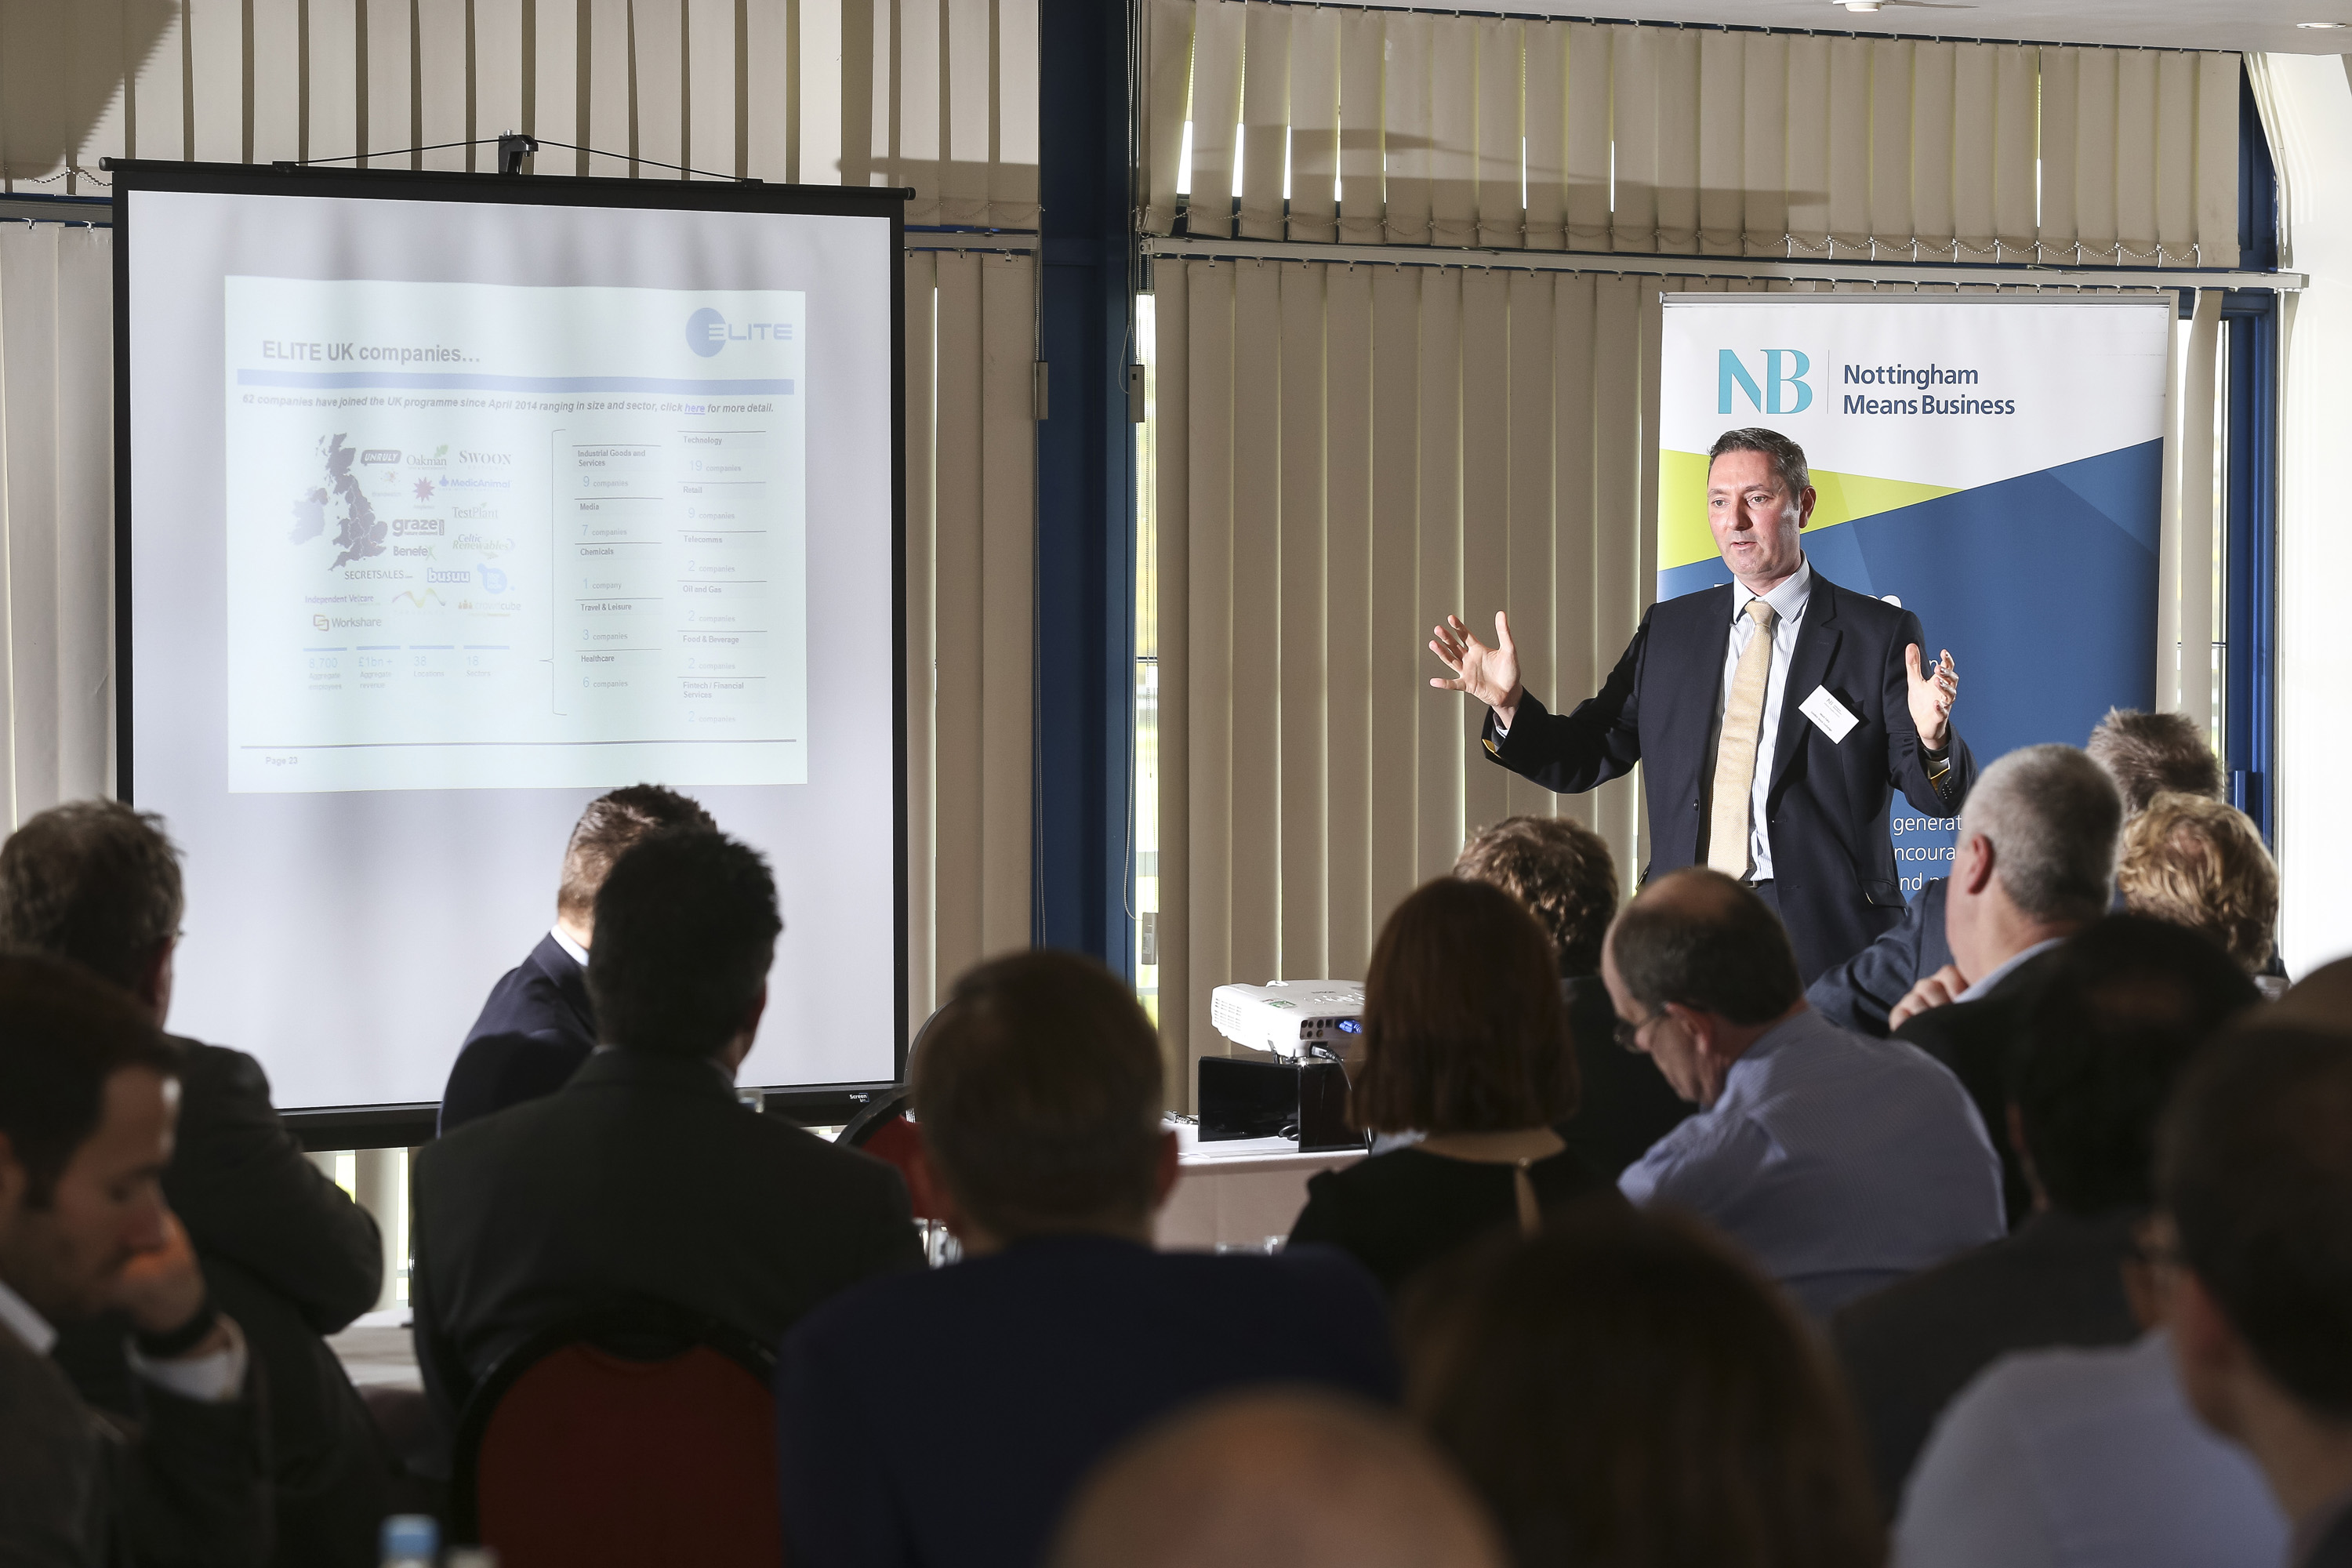 End of year business lunch shows an appetite for success